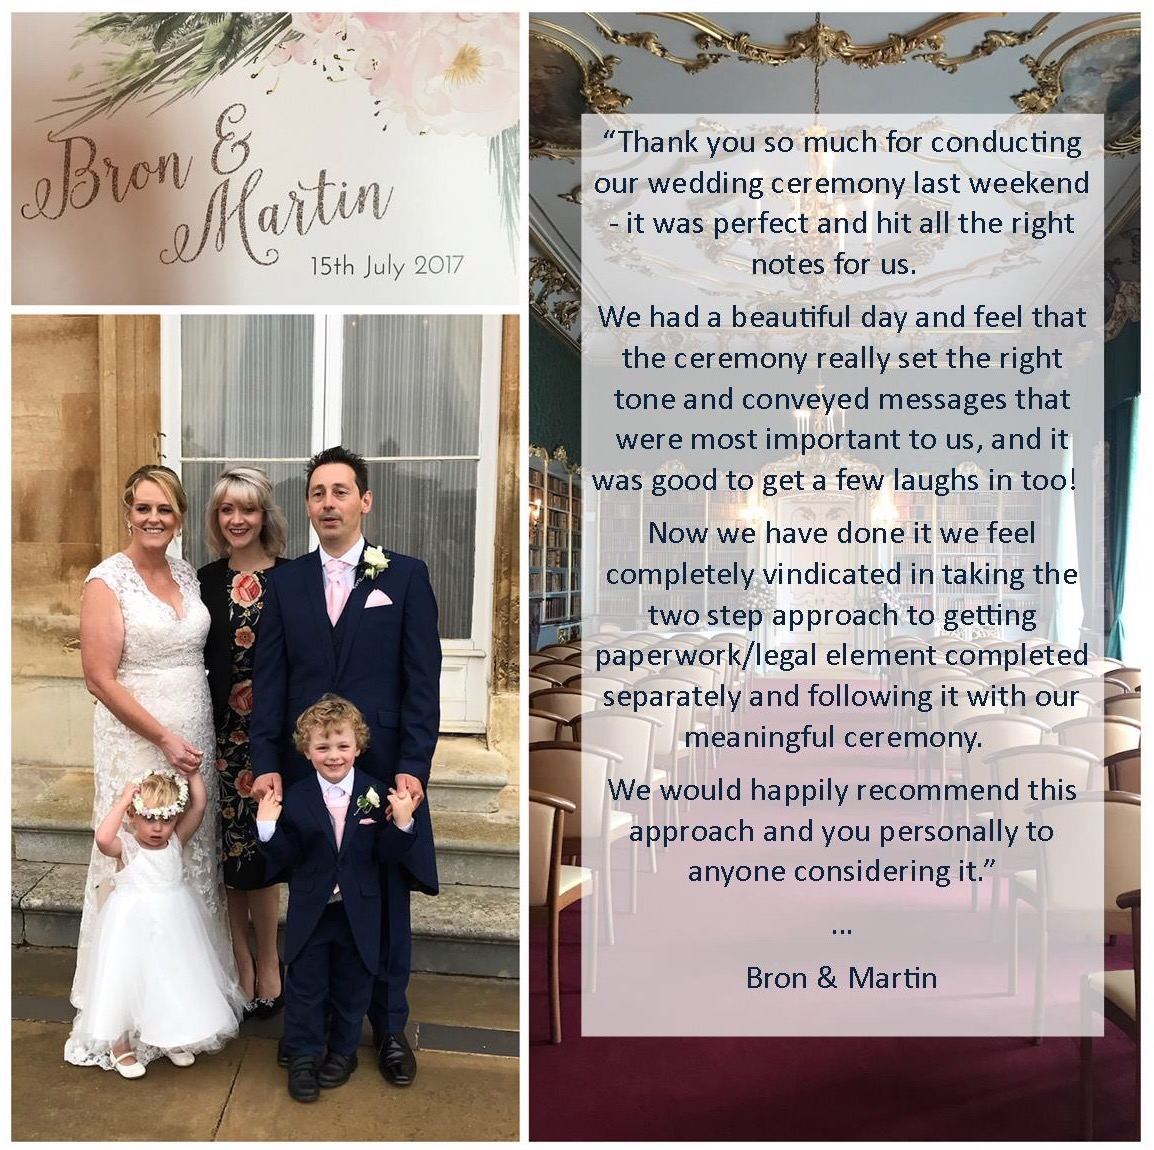 Martin and Bron wedding testimonial celebrant ceremony at Wrest Park